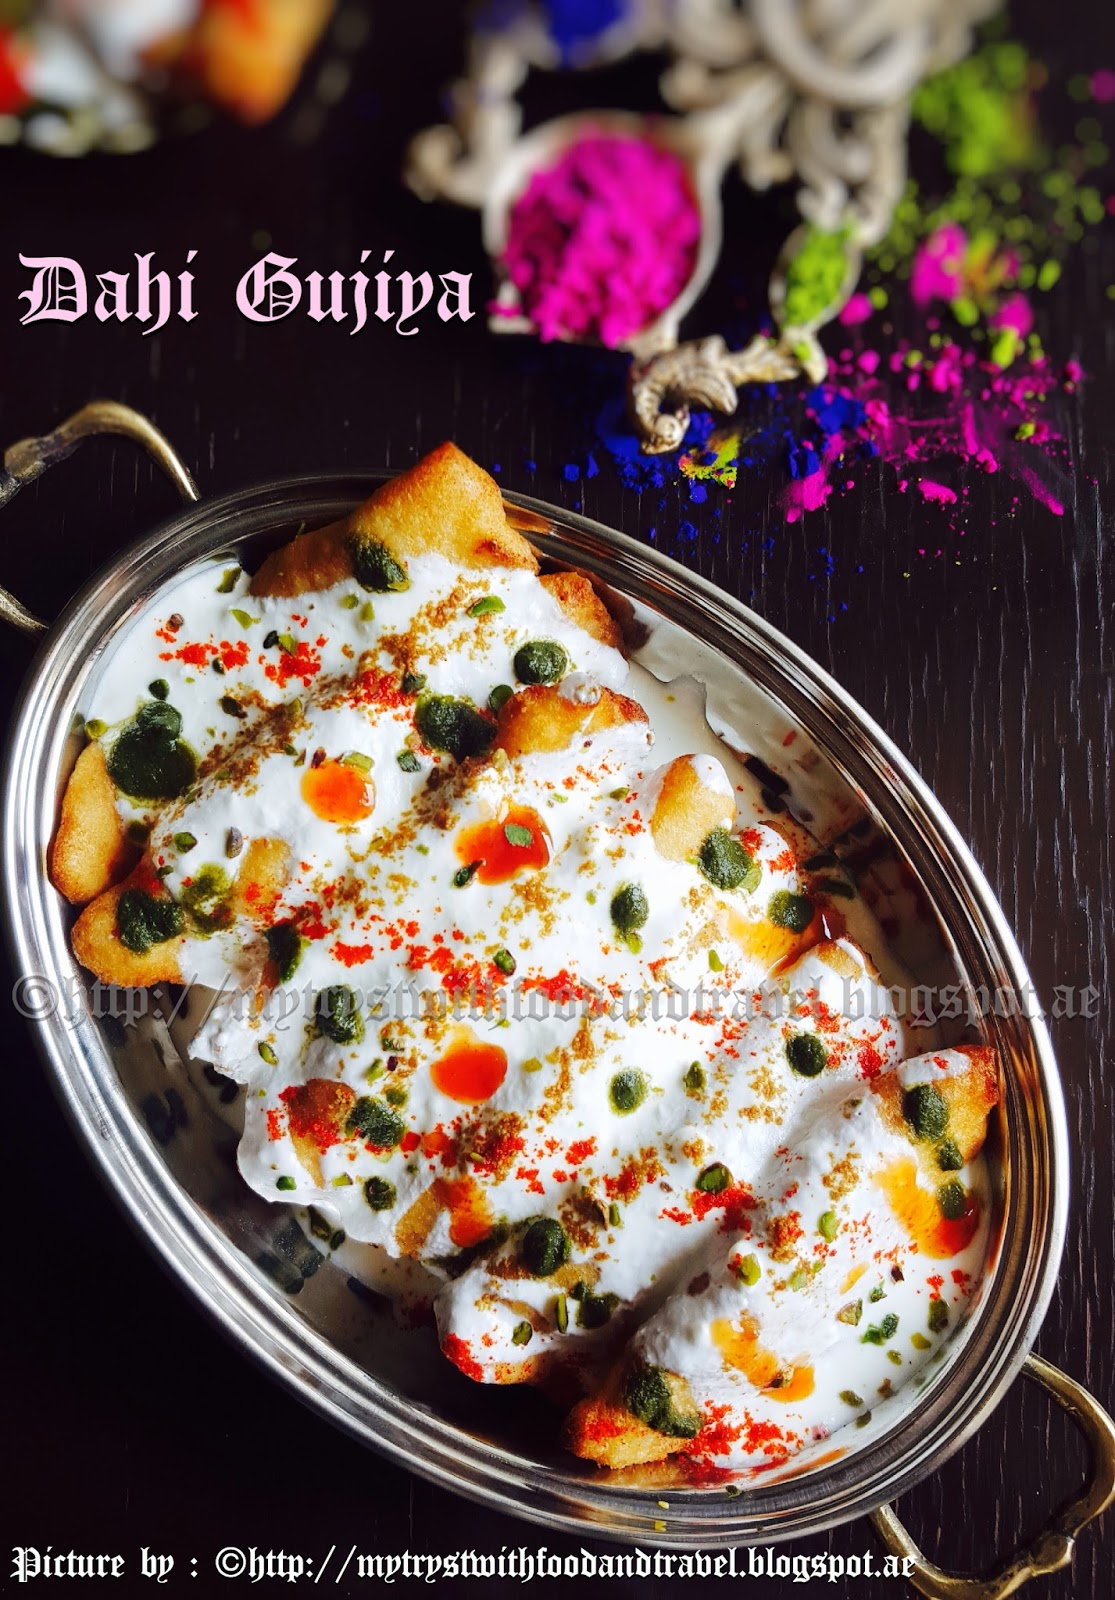 My tryst with food and travel dahi gujiya recipe holi recipes dahi gujiya recipe holi recipes stuffed moon shaped lentil dumplings in yogurt holi hai forumfinder Choice Image